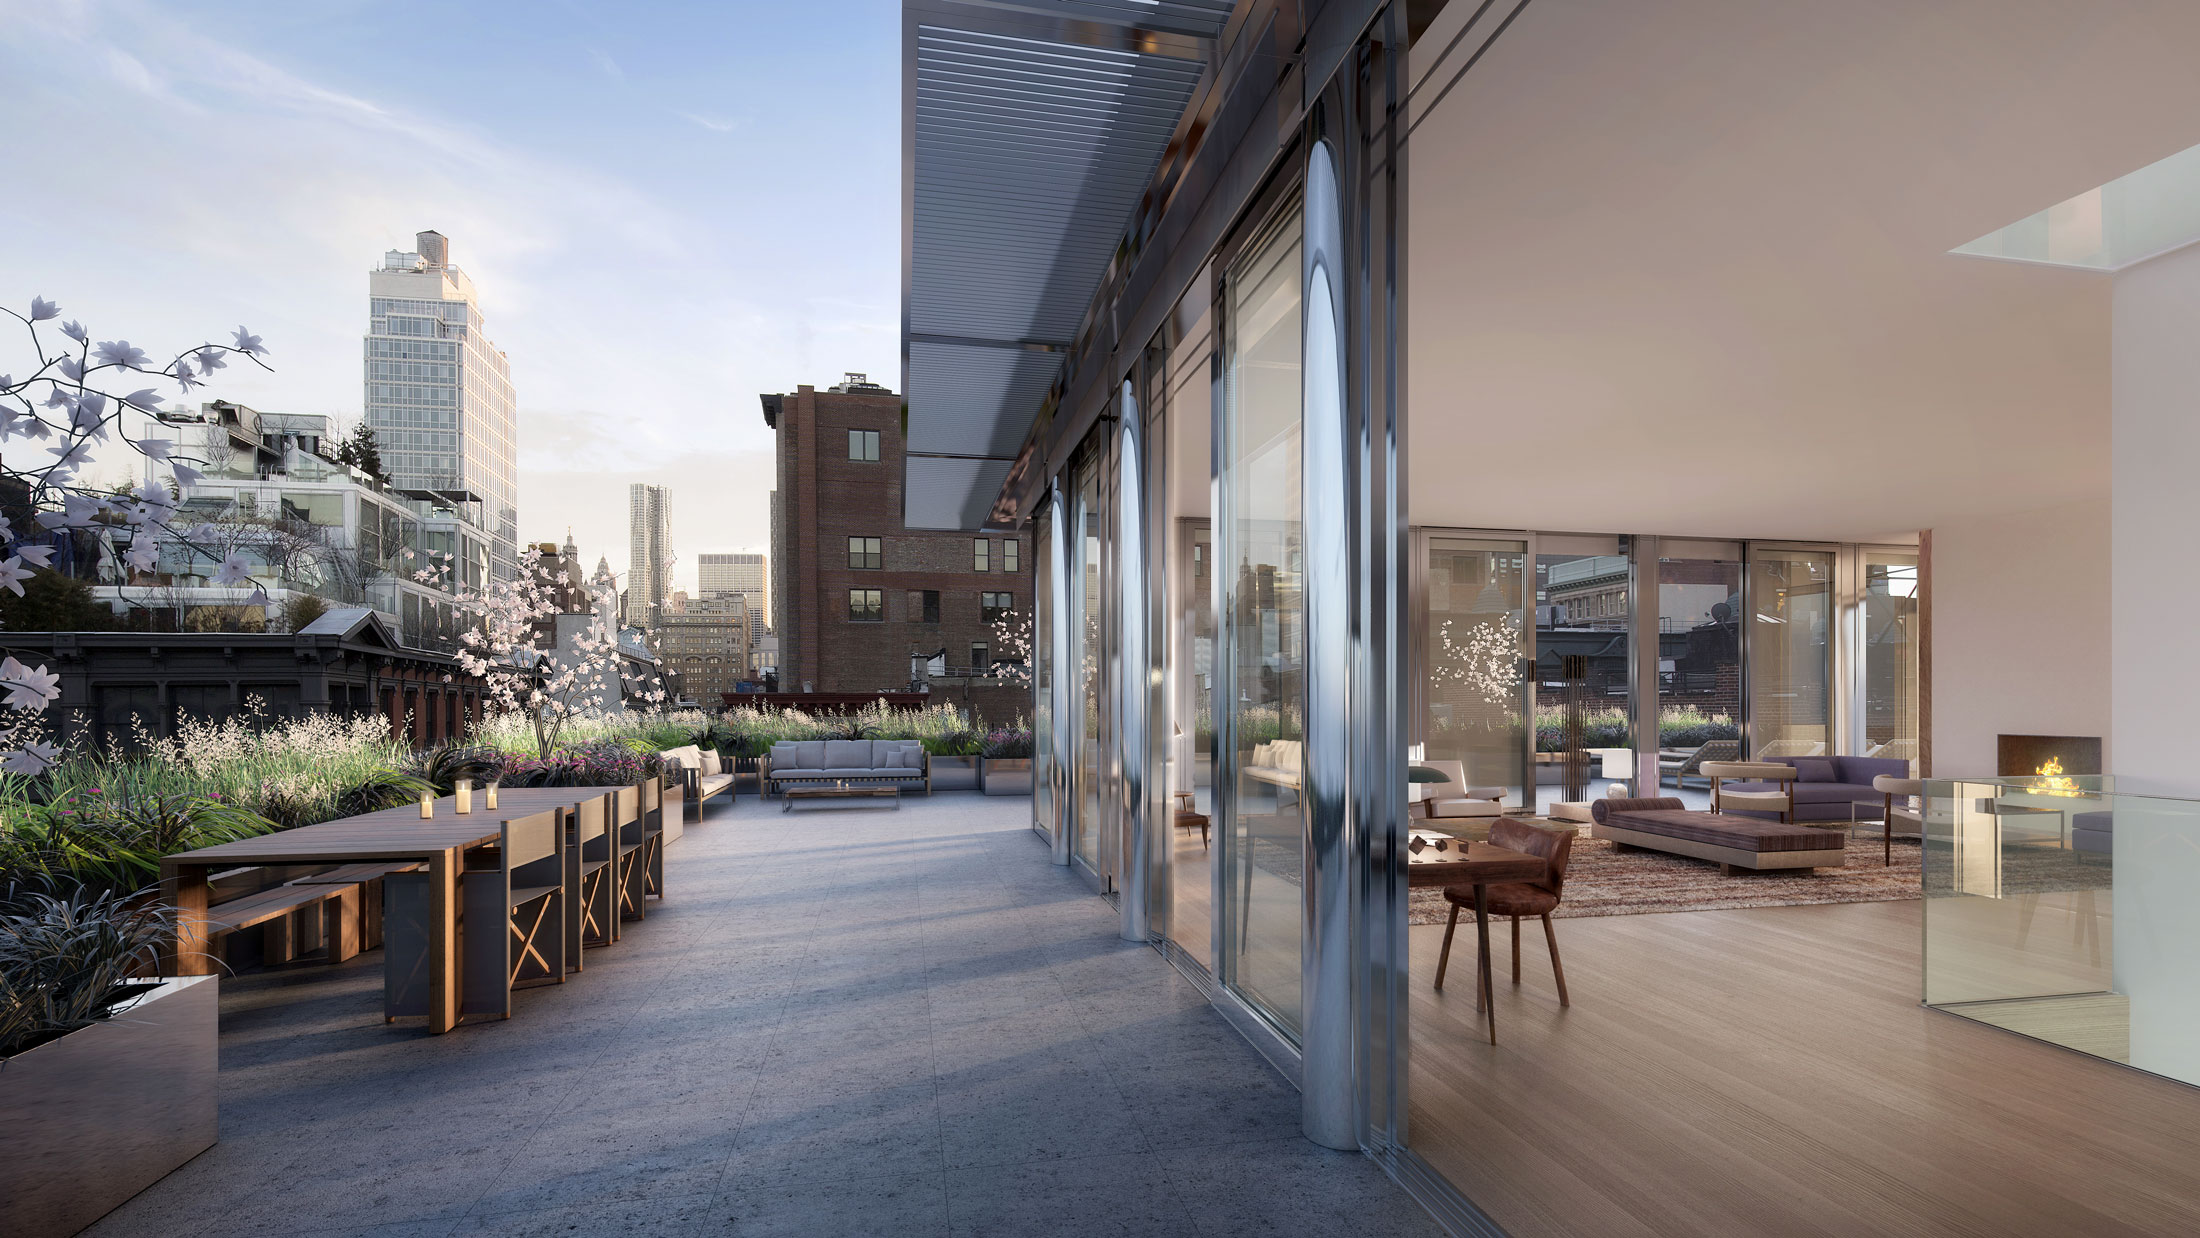 Architectural Rendering of the terrace of the 42 Crosby Street project located in Soho, New York City